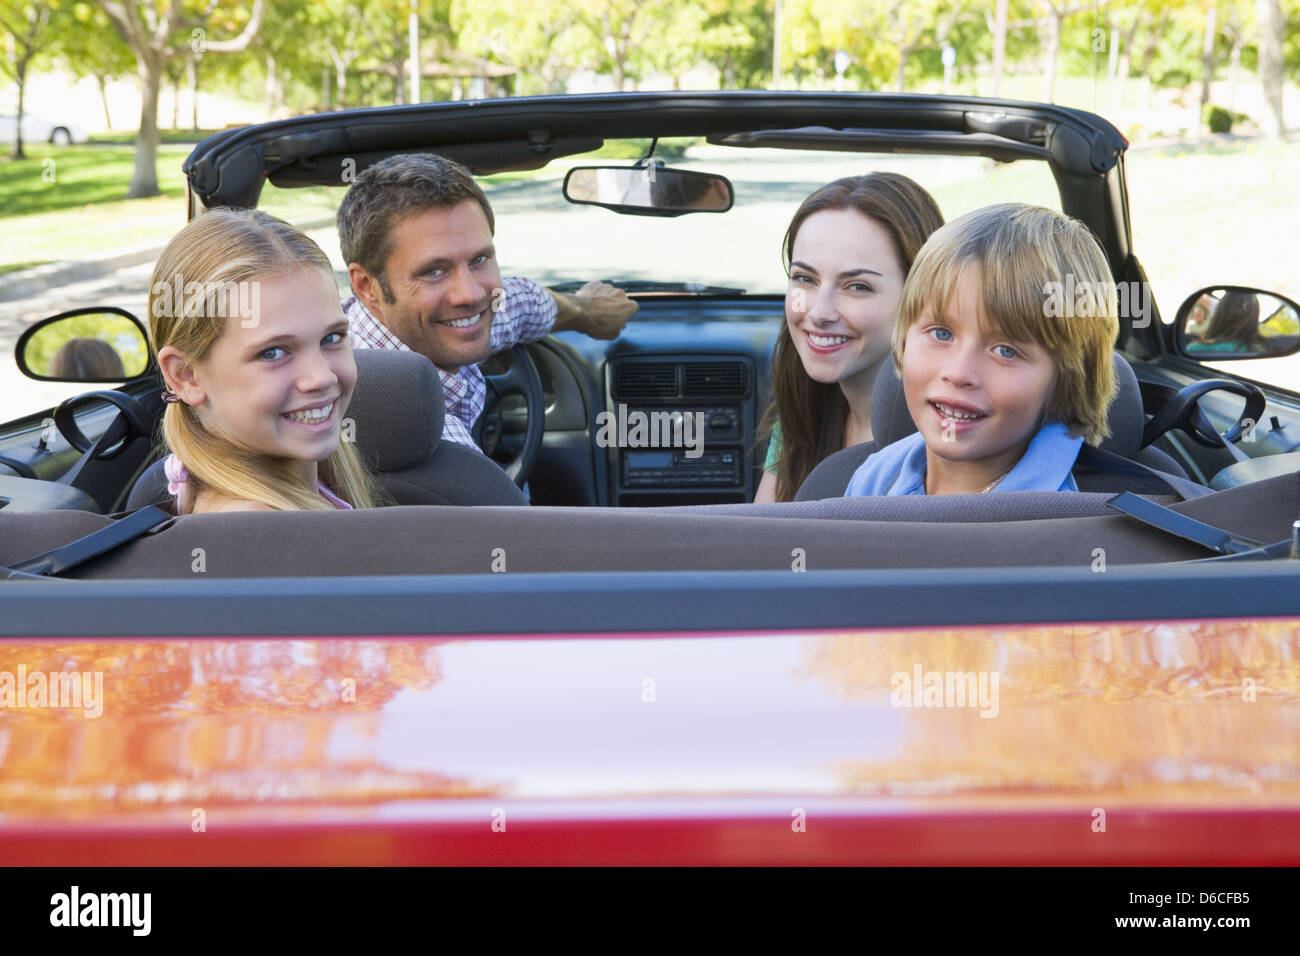 road trip,family,convertible,family outing - Stock Image